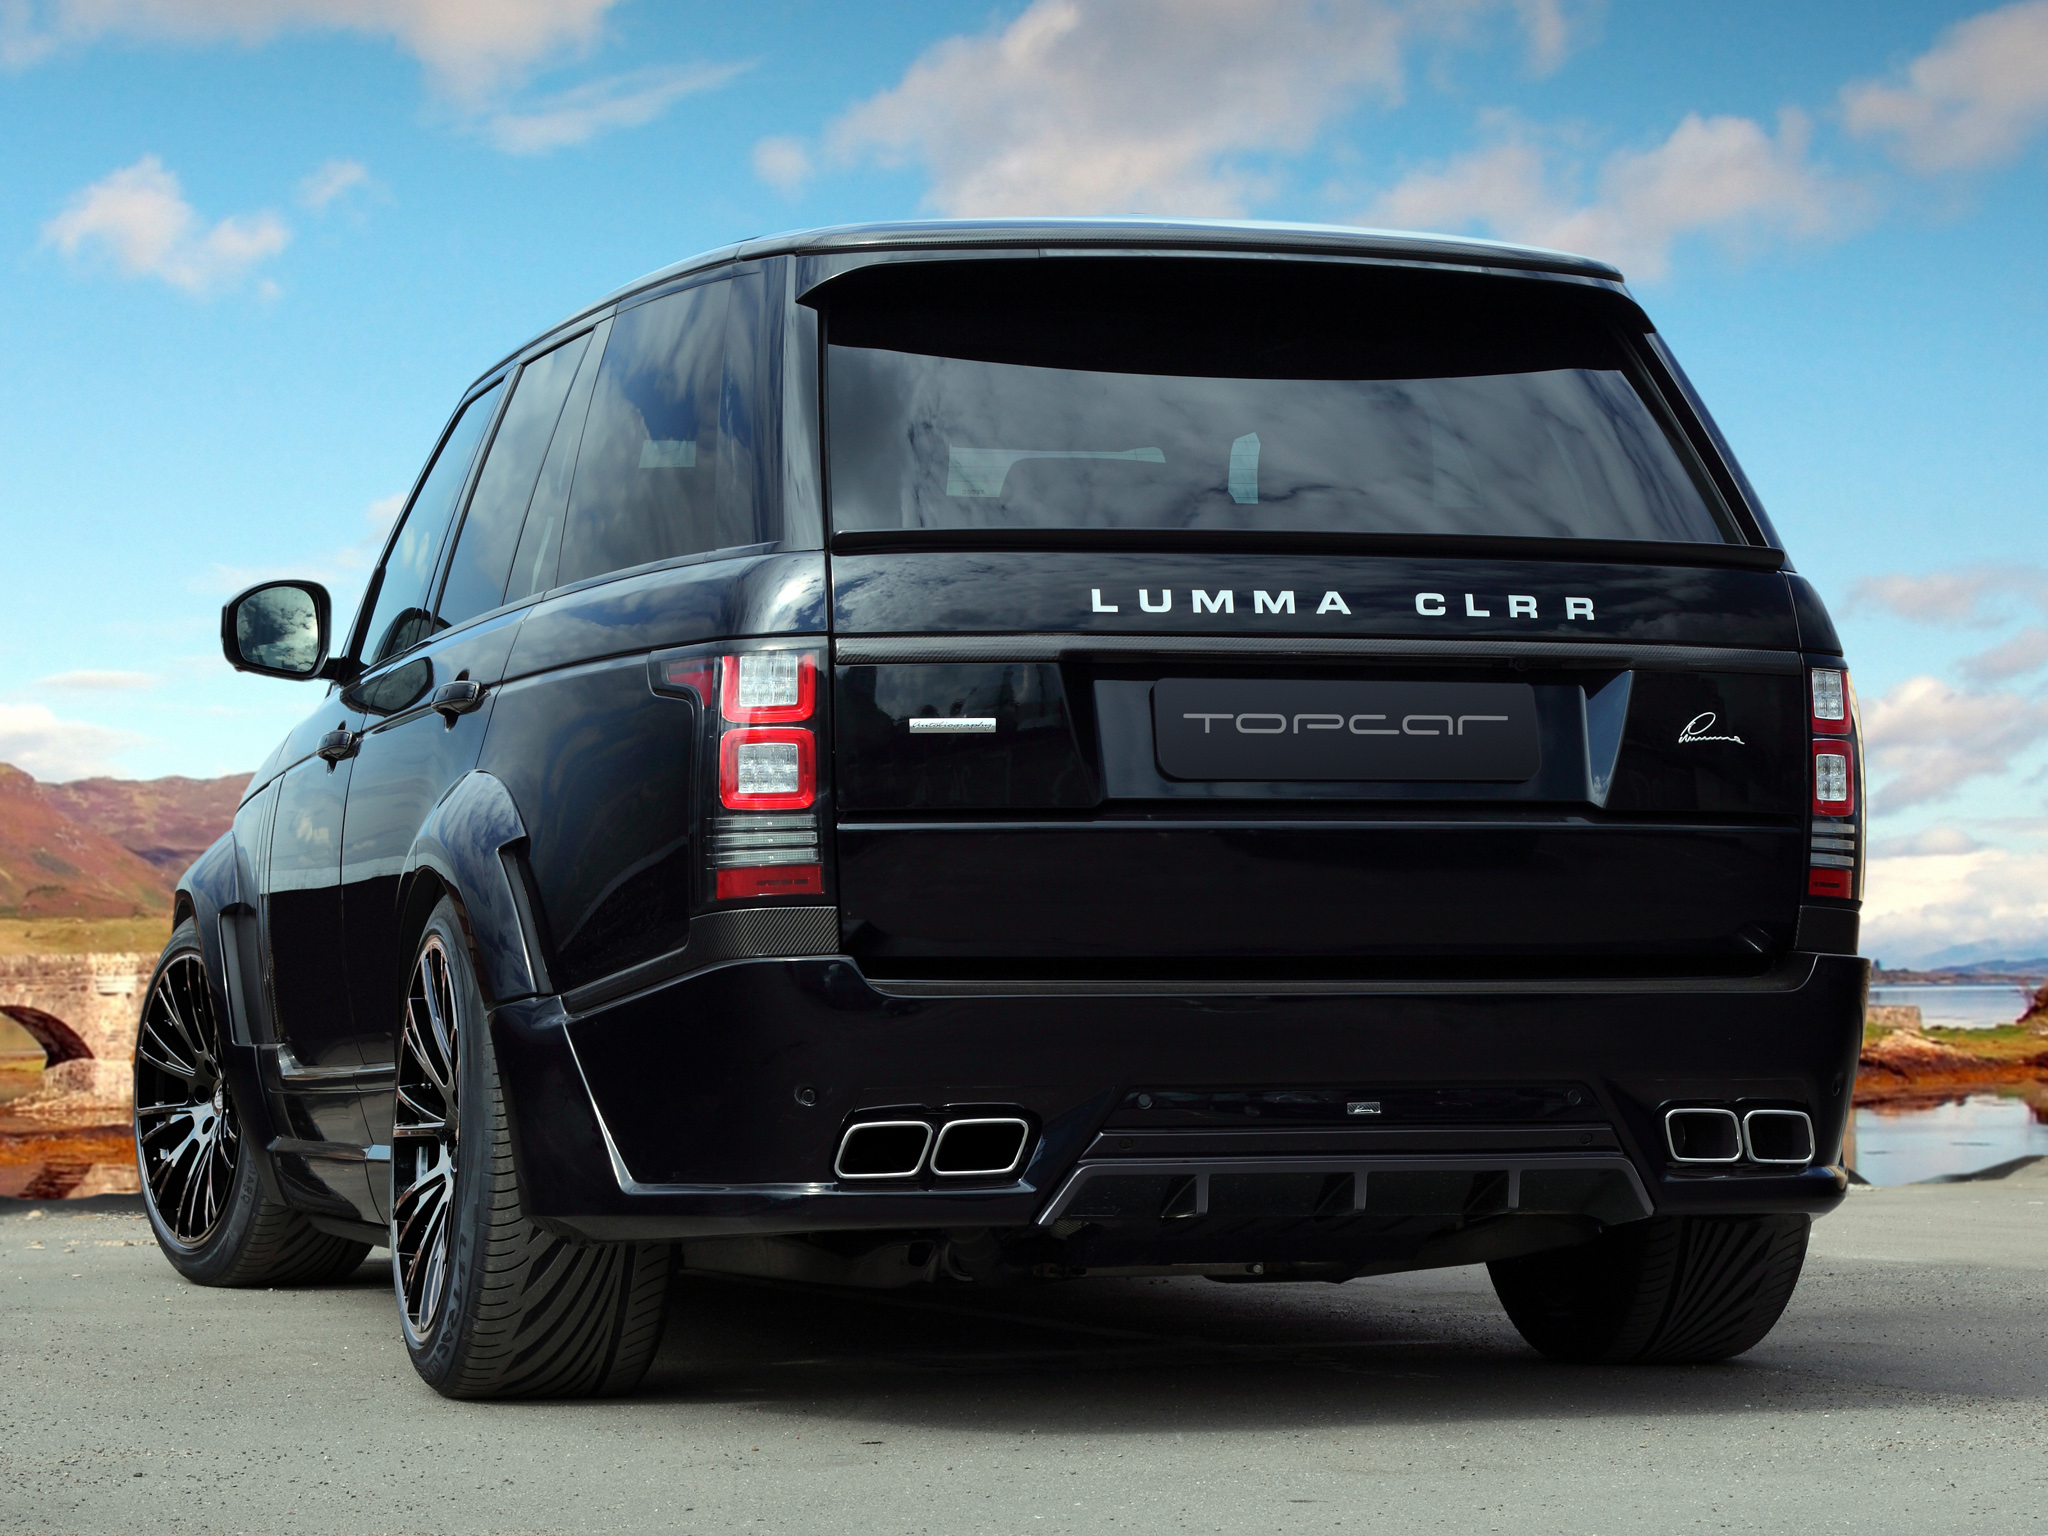 2013 lumma clr r range rover supercharged tuning suv f. Black Bedroom Furniture Sets. Home Design Ideas